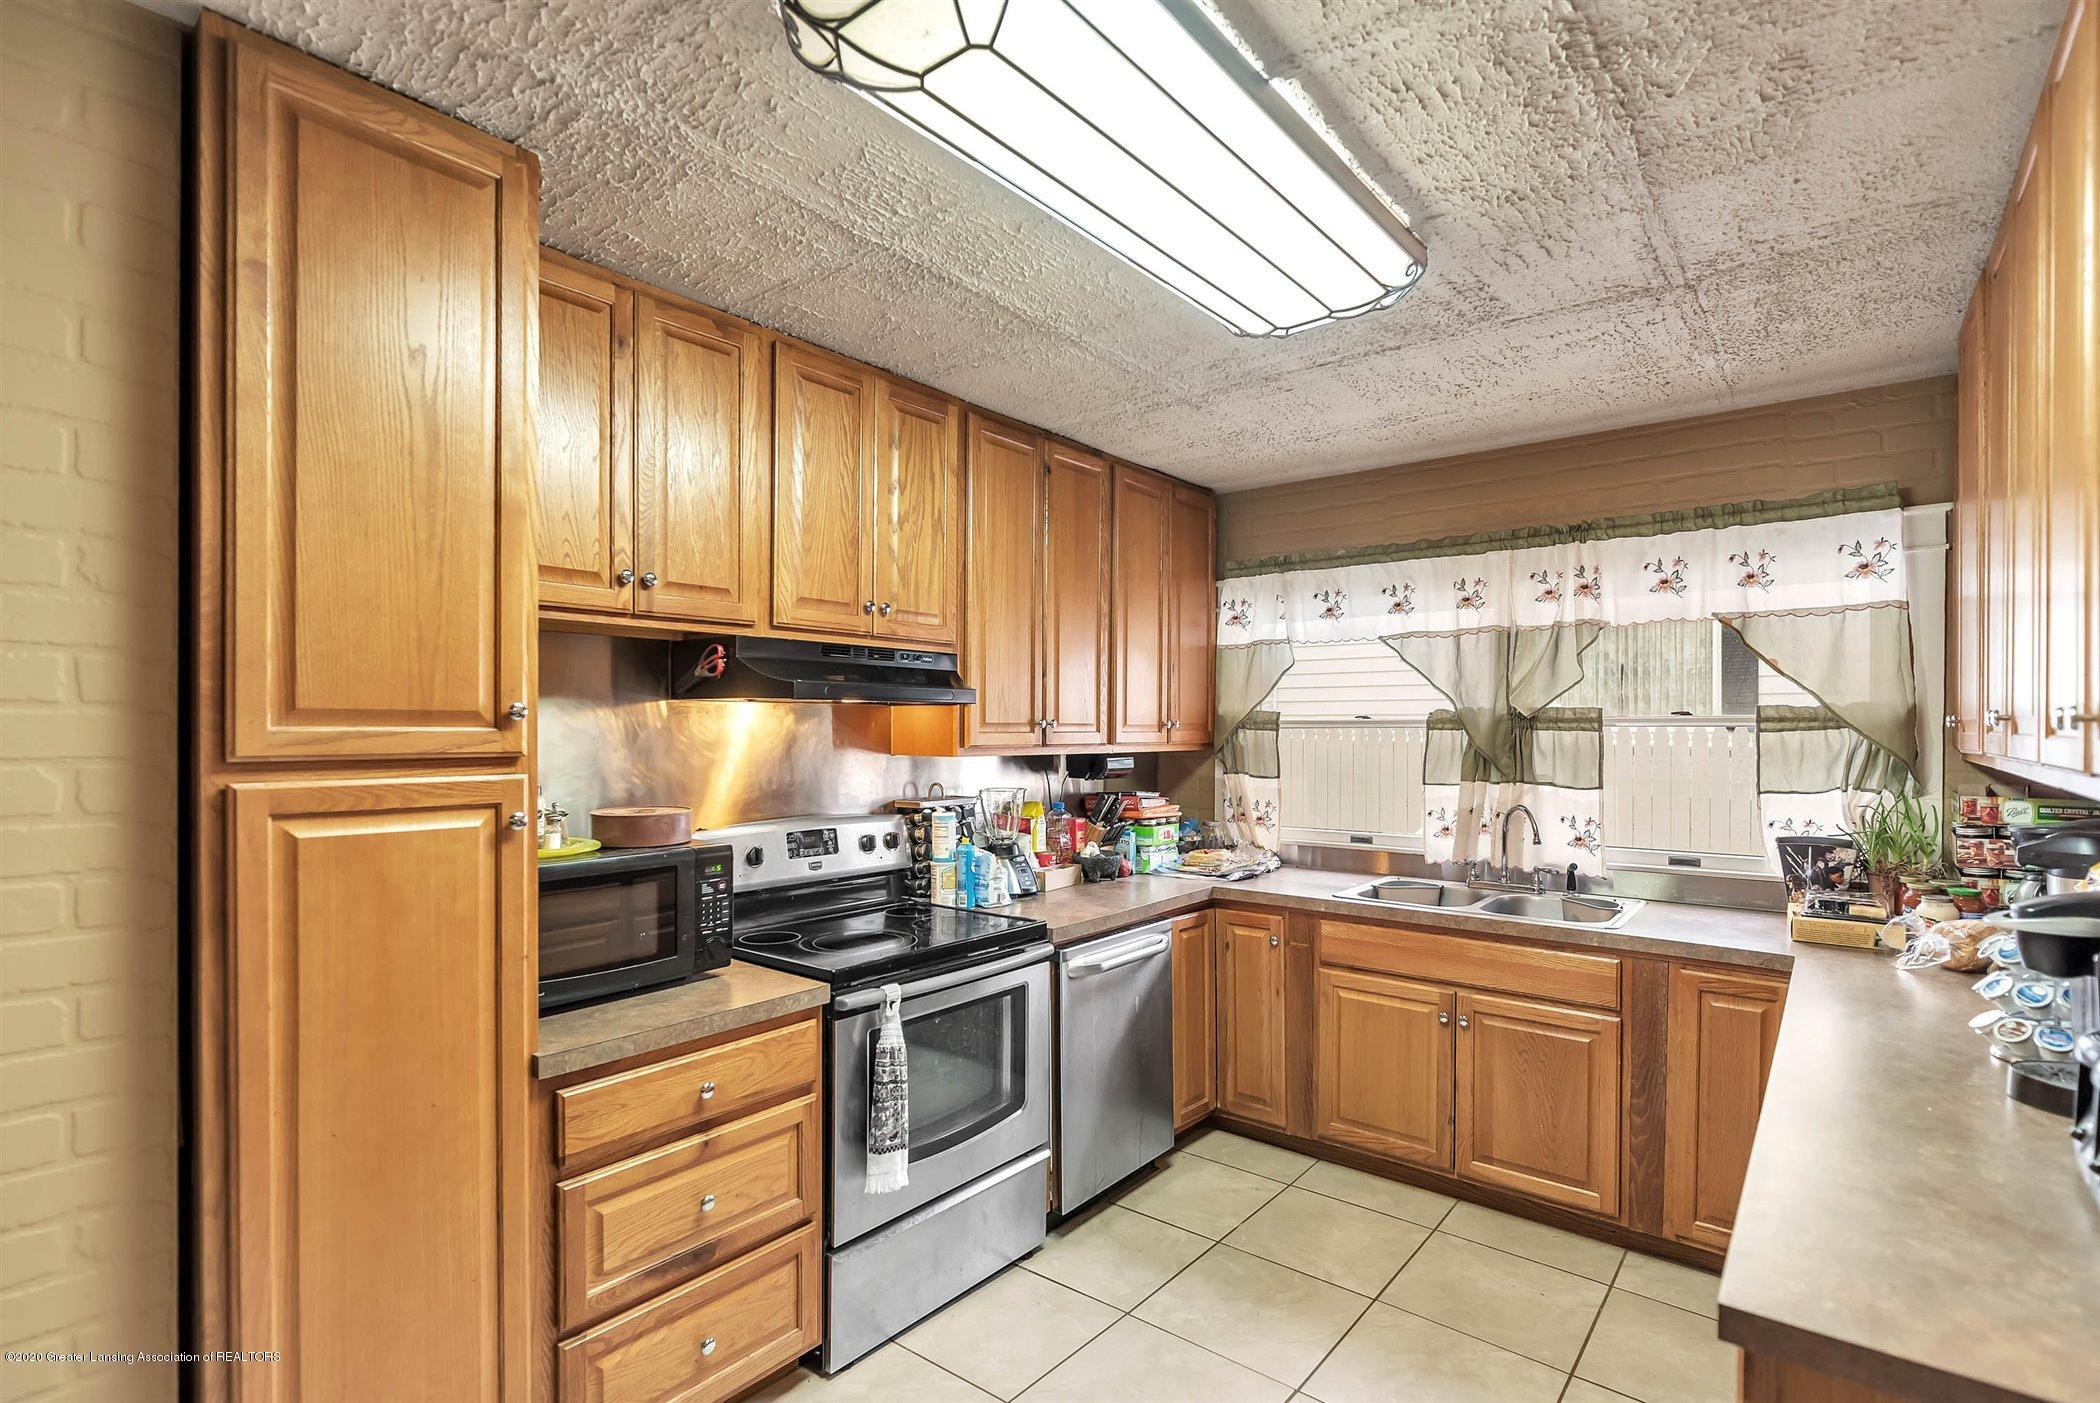 402 W Williams St - Kitchen - 15